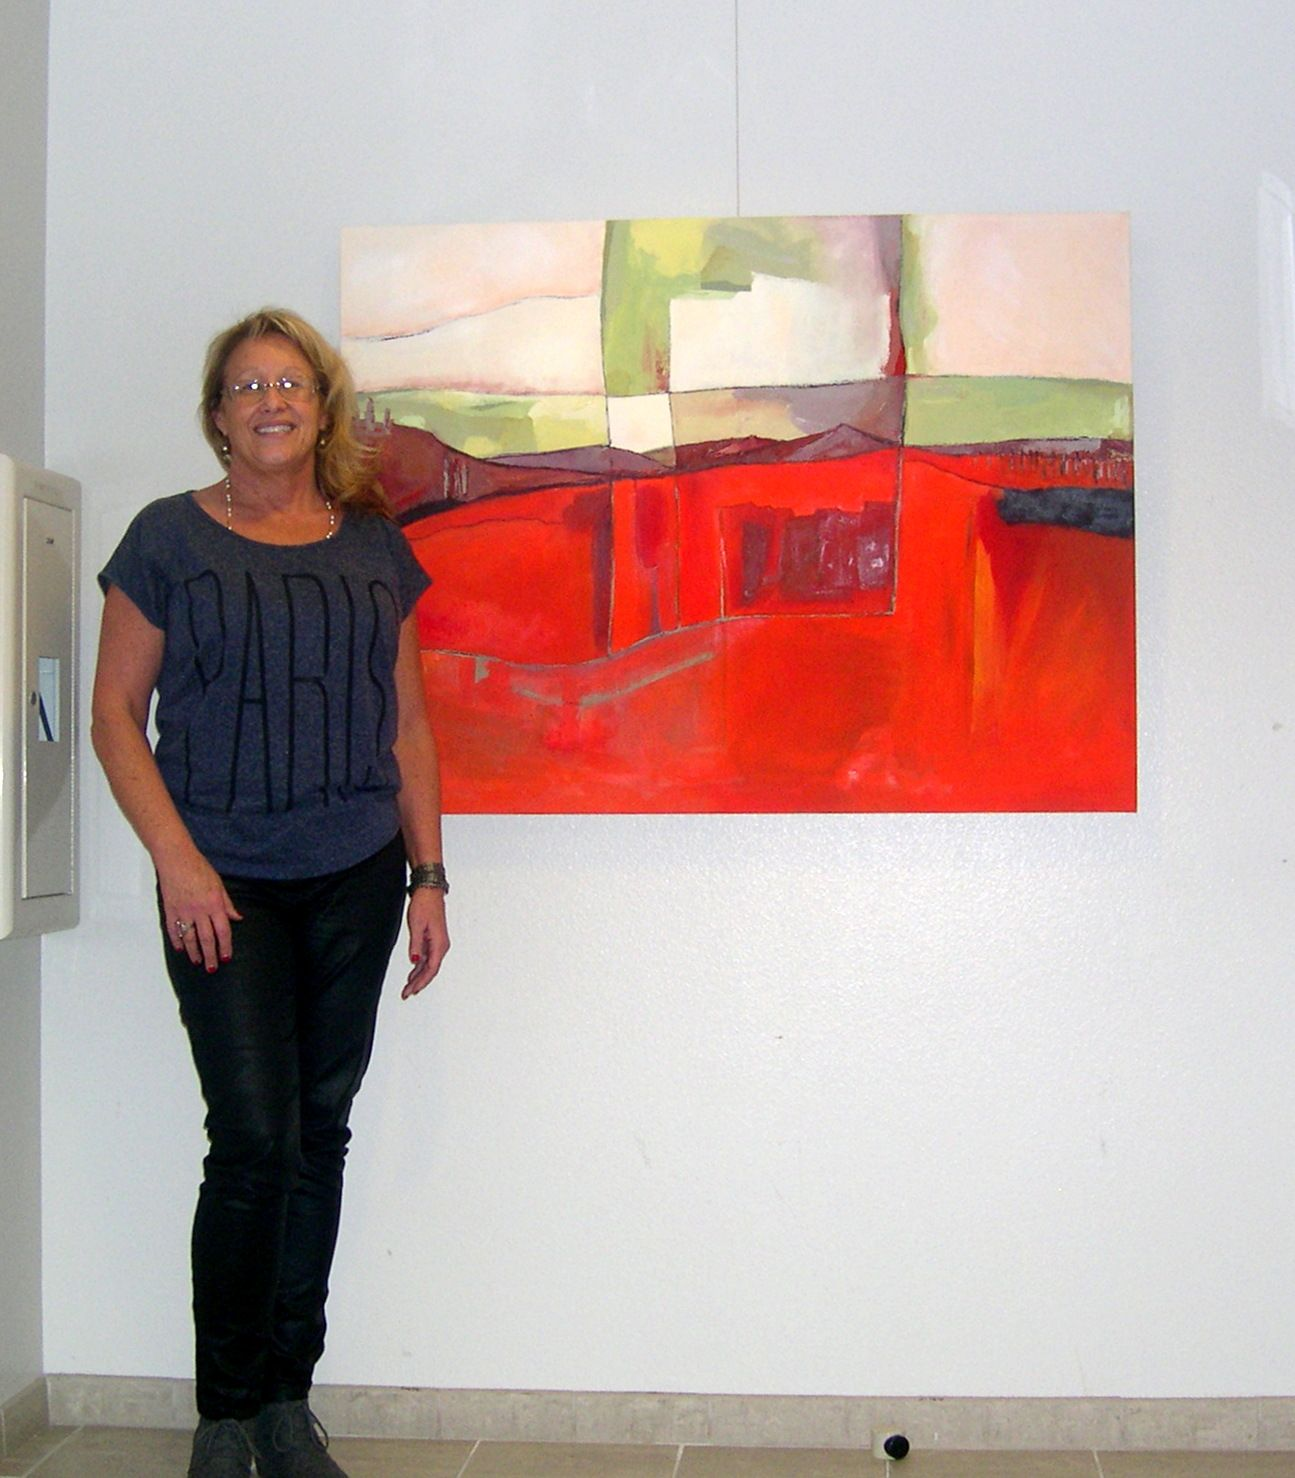 Solo exhibit features abstract art by California artist Danielle Nelisse at Encinitas City Hall Art Gallery in California. Follow along on facebook fan page at www.facebook.com/daniellenelisseartist